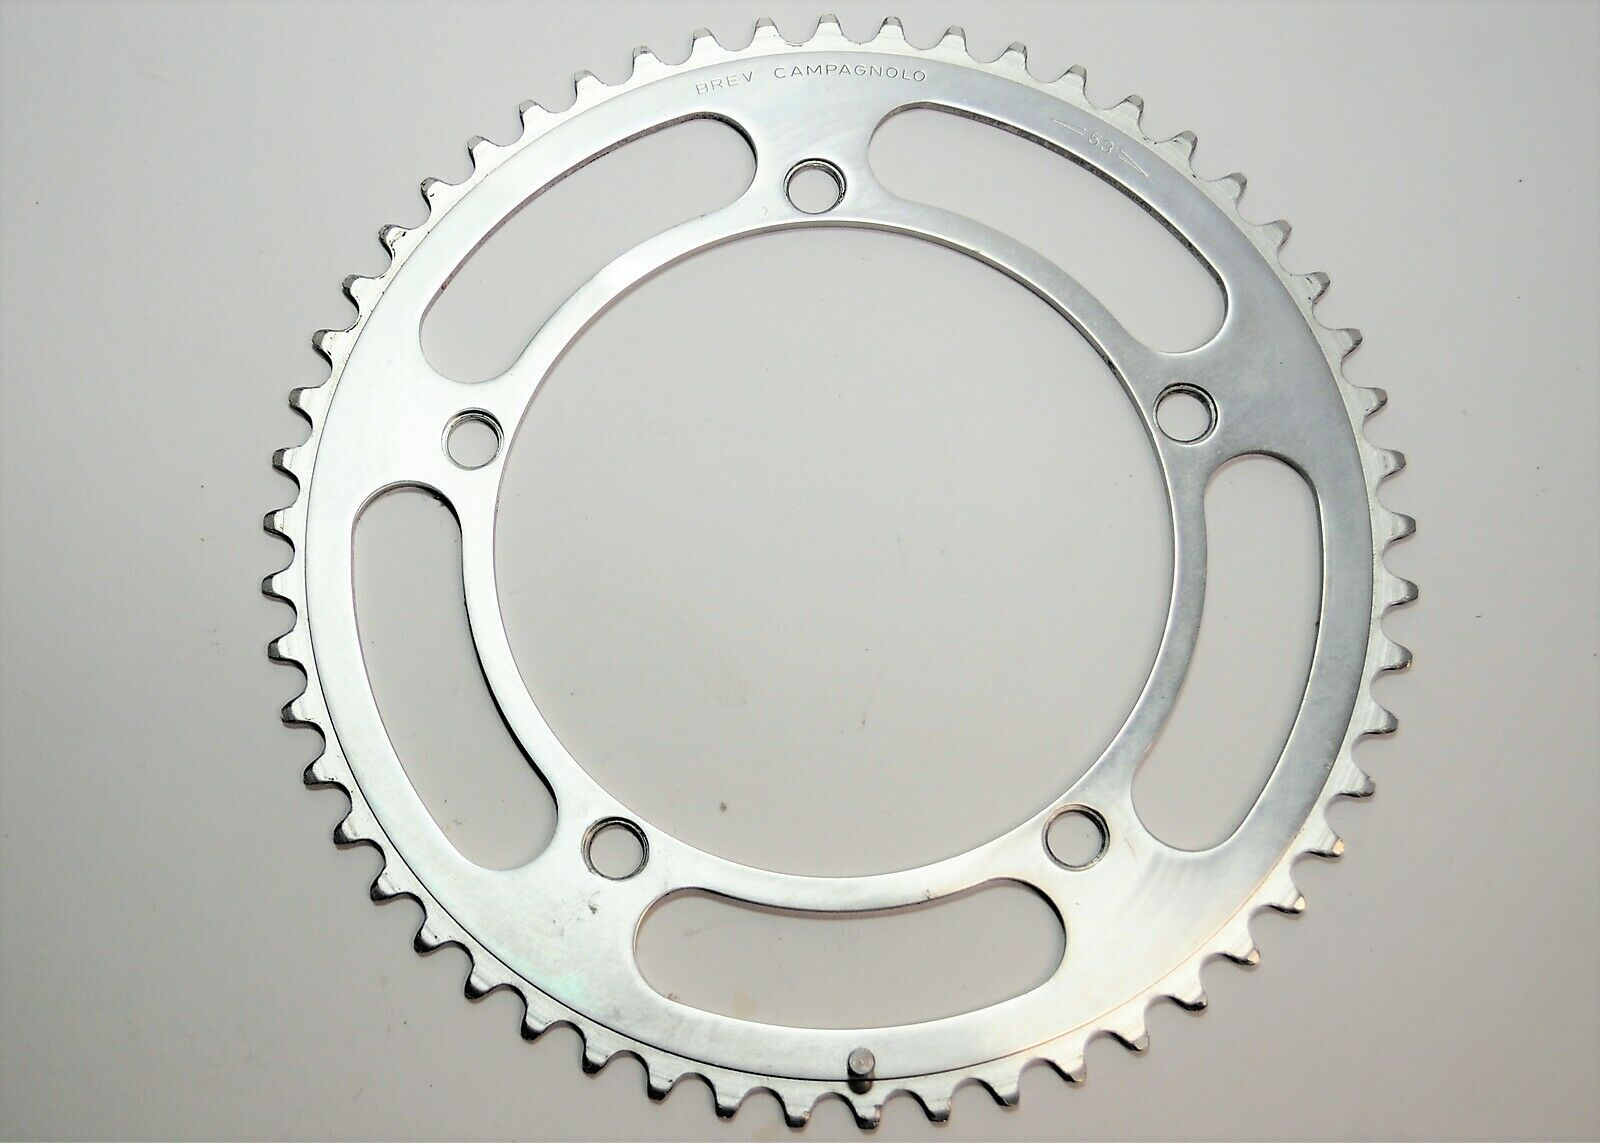 BREV CAMPAGNOLO NUOVO RECORD BICYCLE 5 ARM 53 TOOTH ALLOY CHAINRING 144 MM BCD